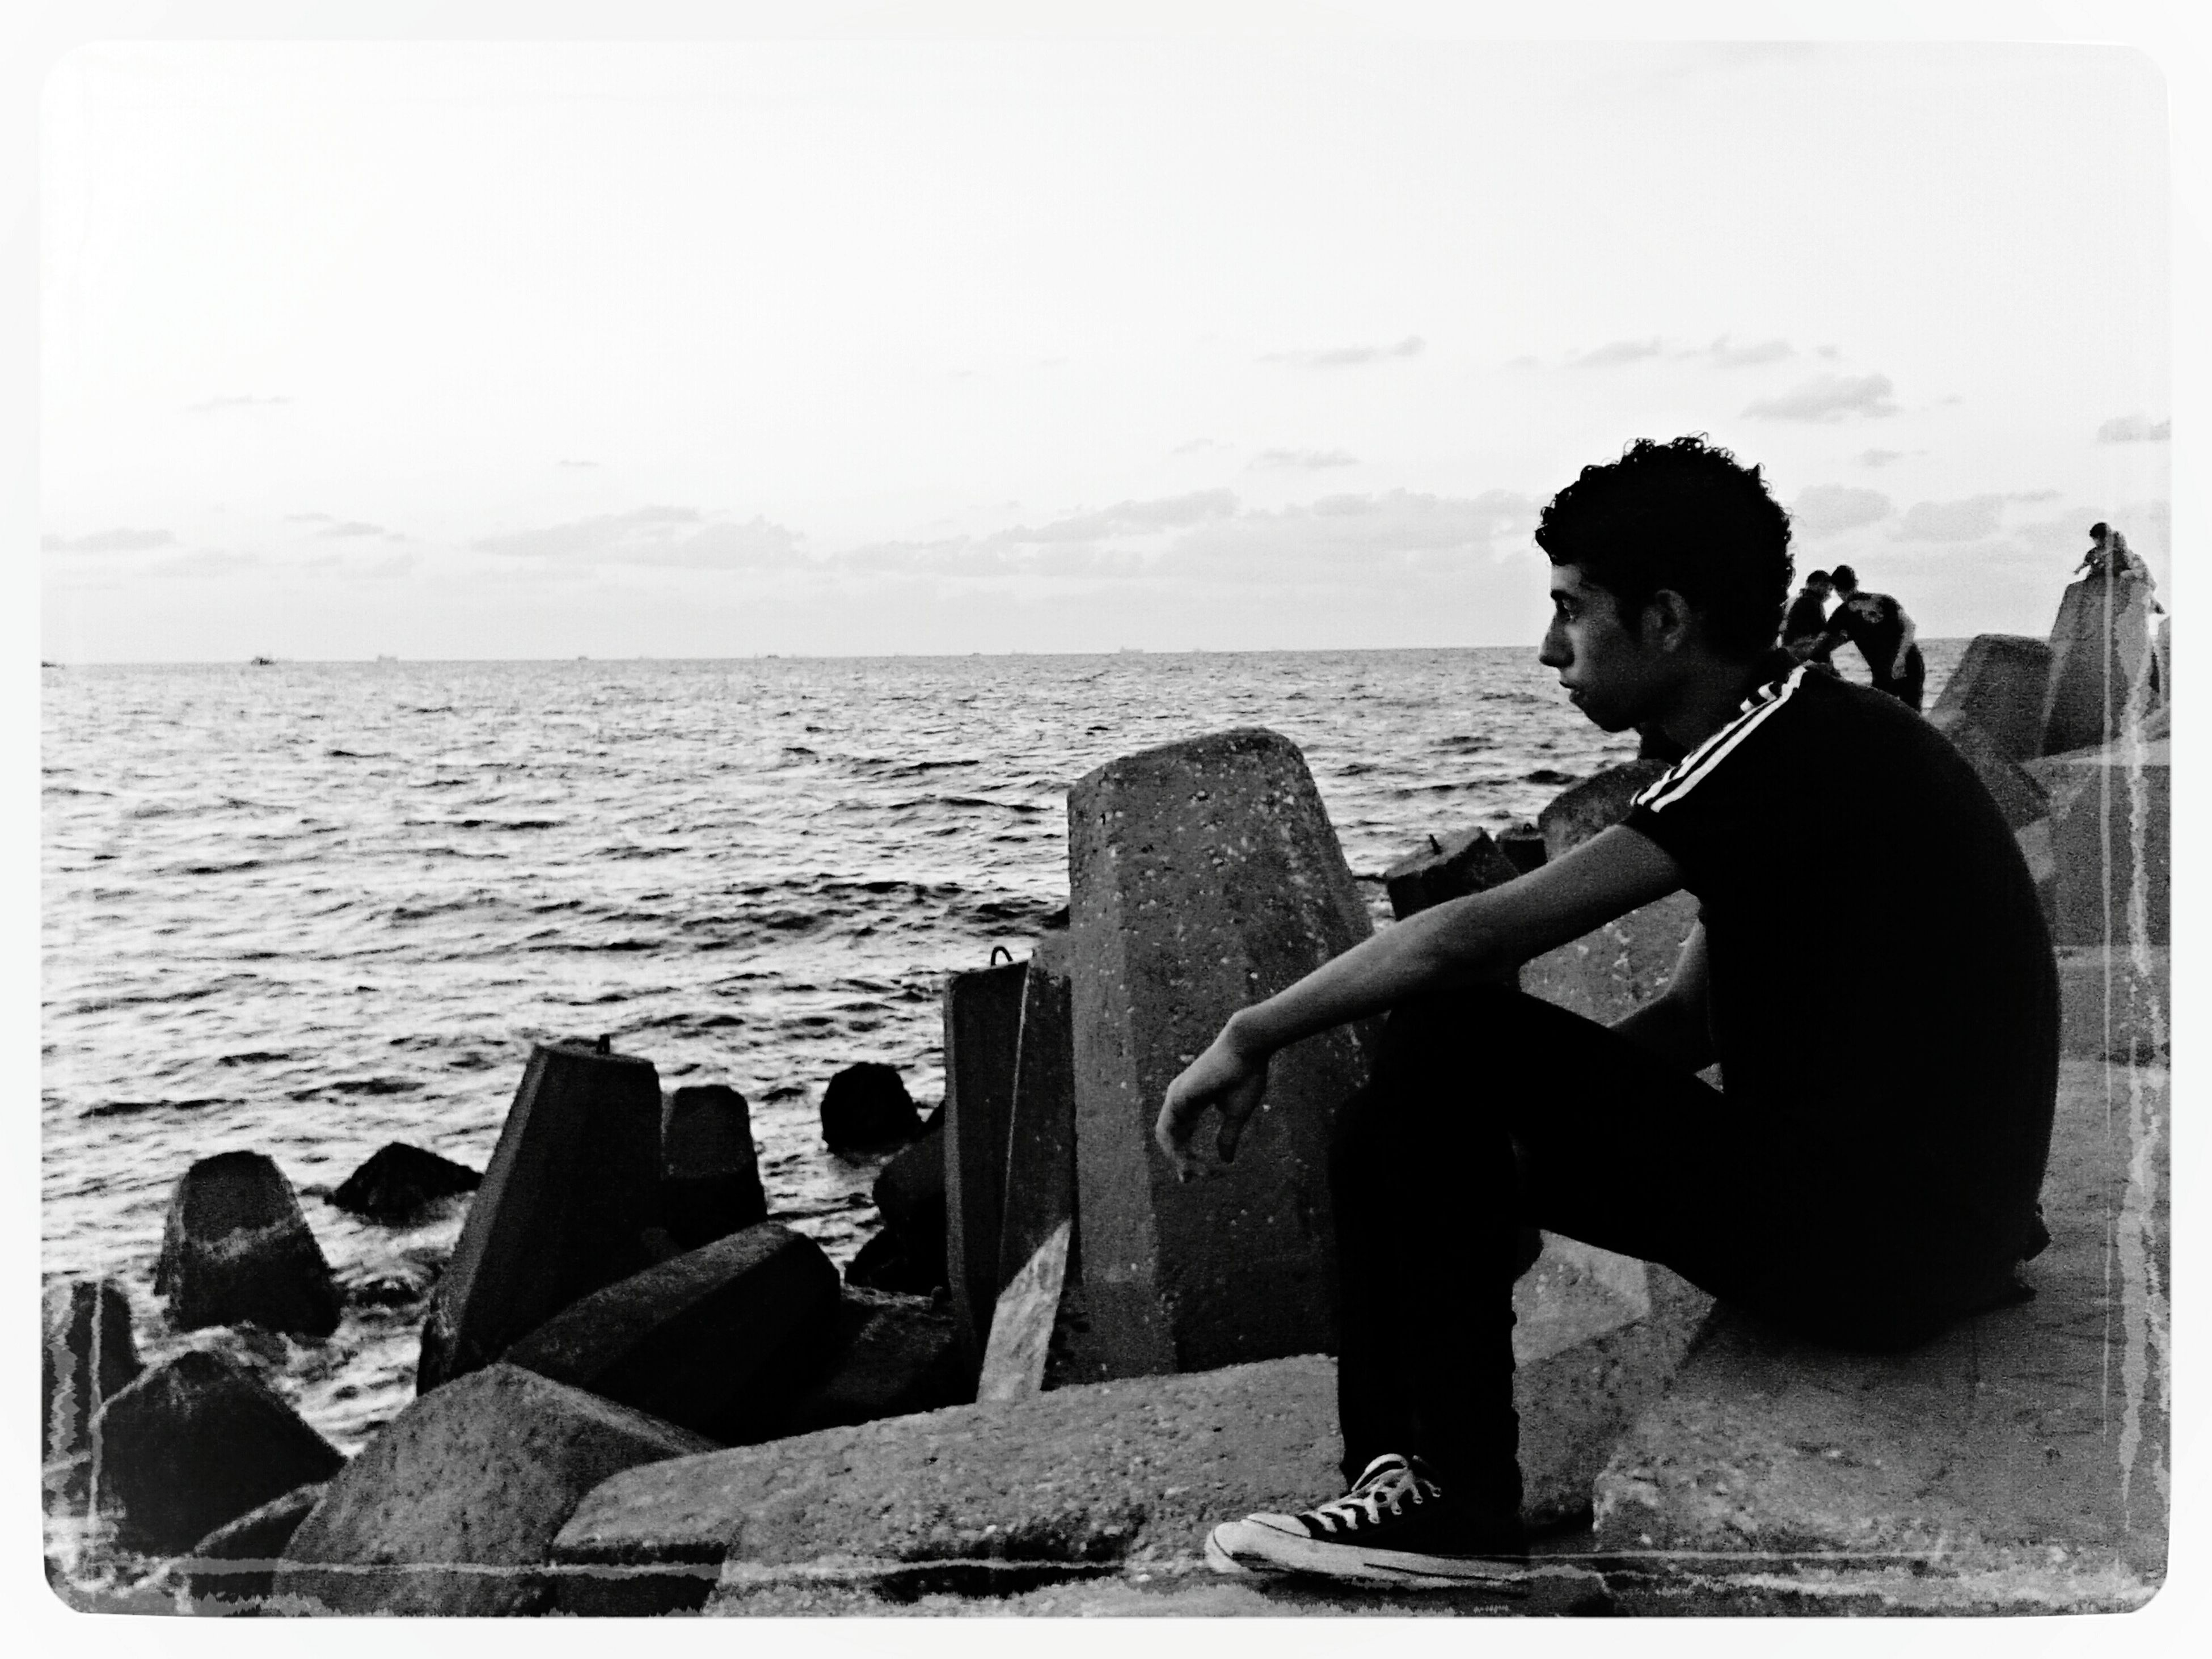 sea, water, horizon over water, lifestyles, sitting, leisure activity, young adult, rear view, full length, sky, casual clothing, standing, photography themes, person, looking at view, relaxation, photographing, young women